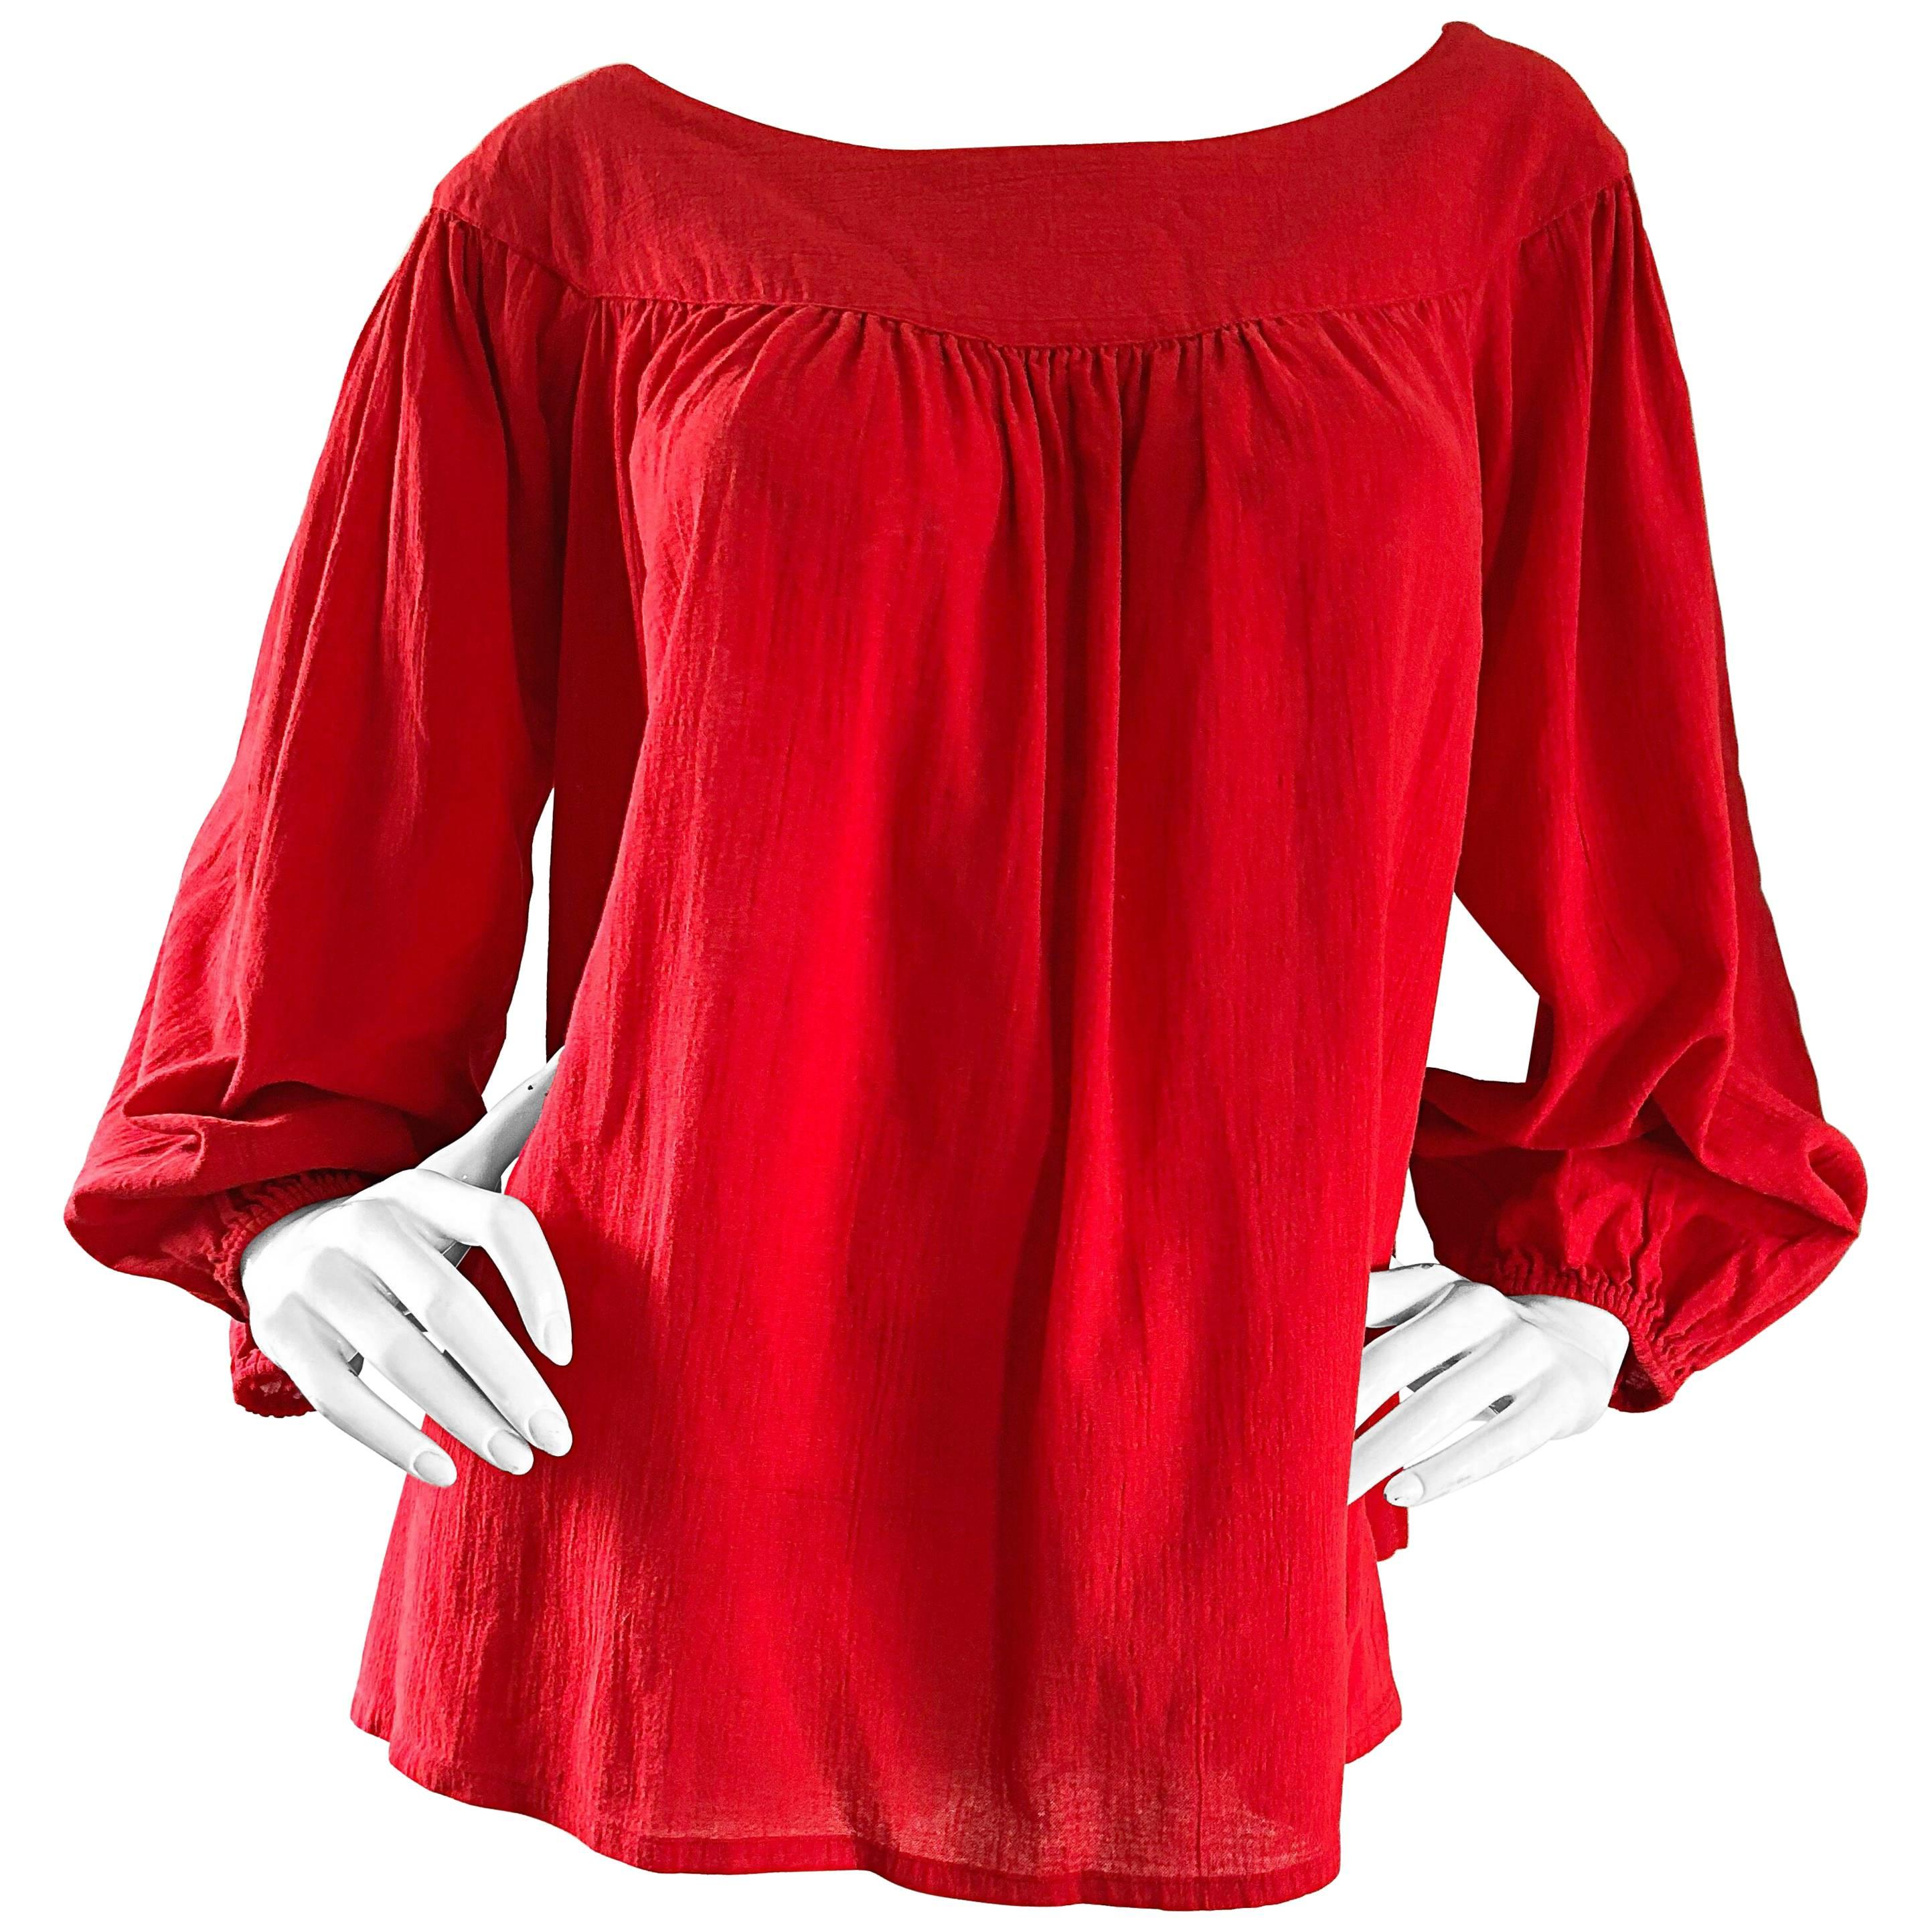 1970s Yves Saint Laurent Russian Collection Lipstick Red Boho Peasant Blouse Top